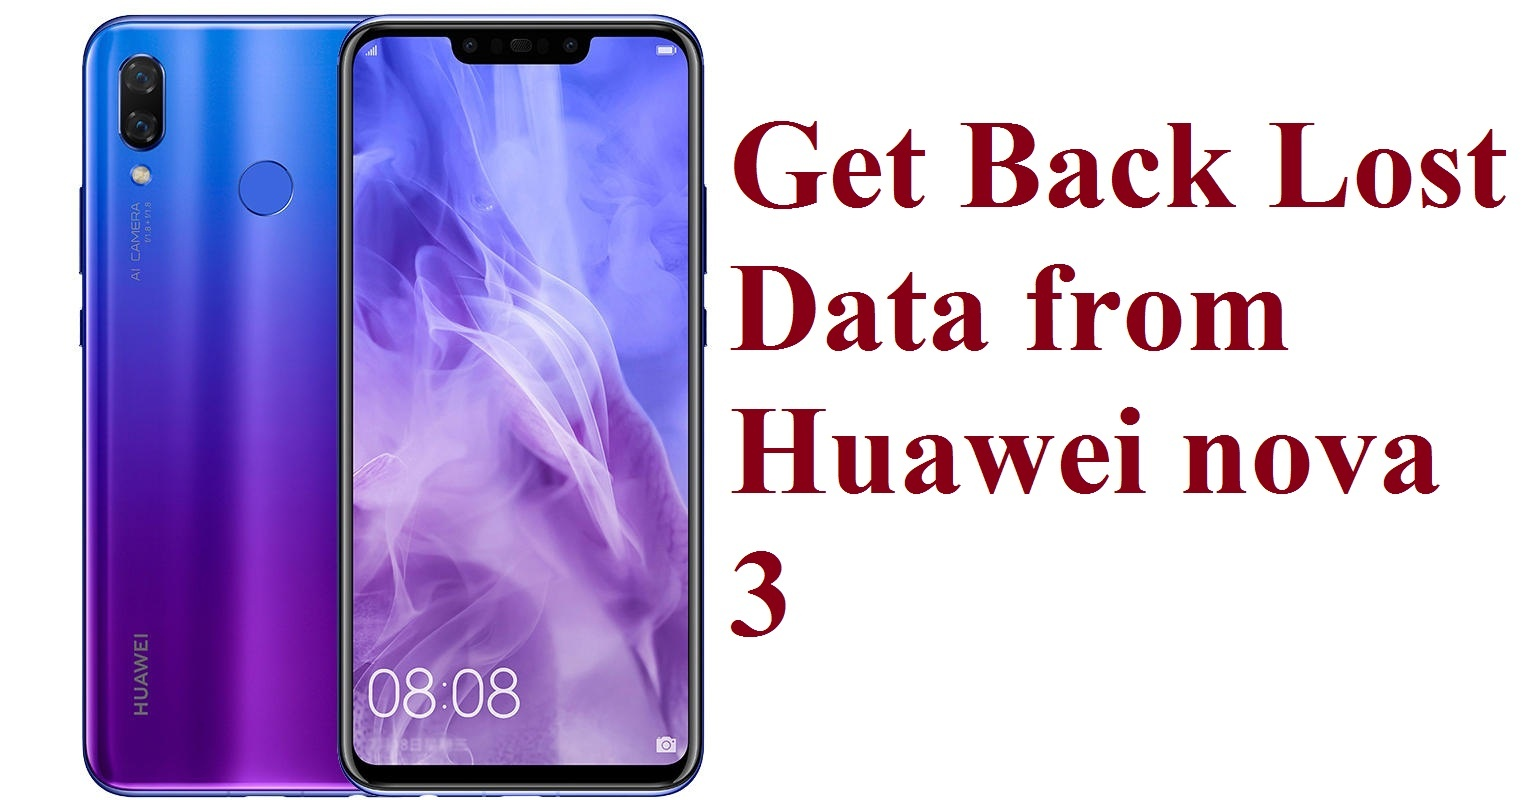 get back lost data from Huawei nova 3